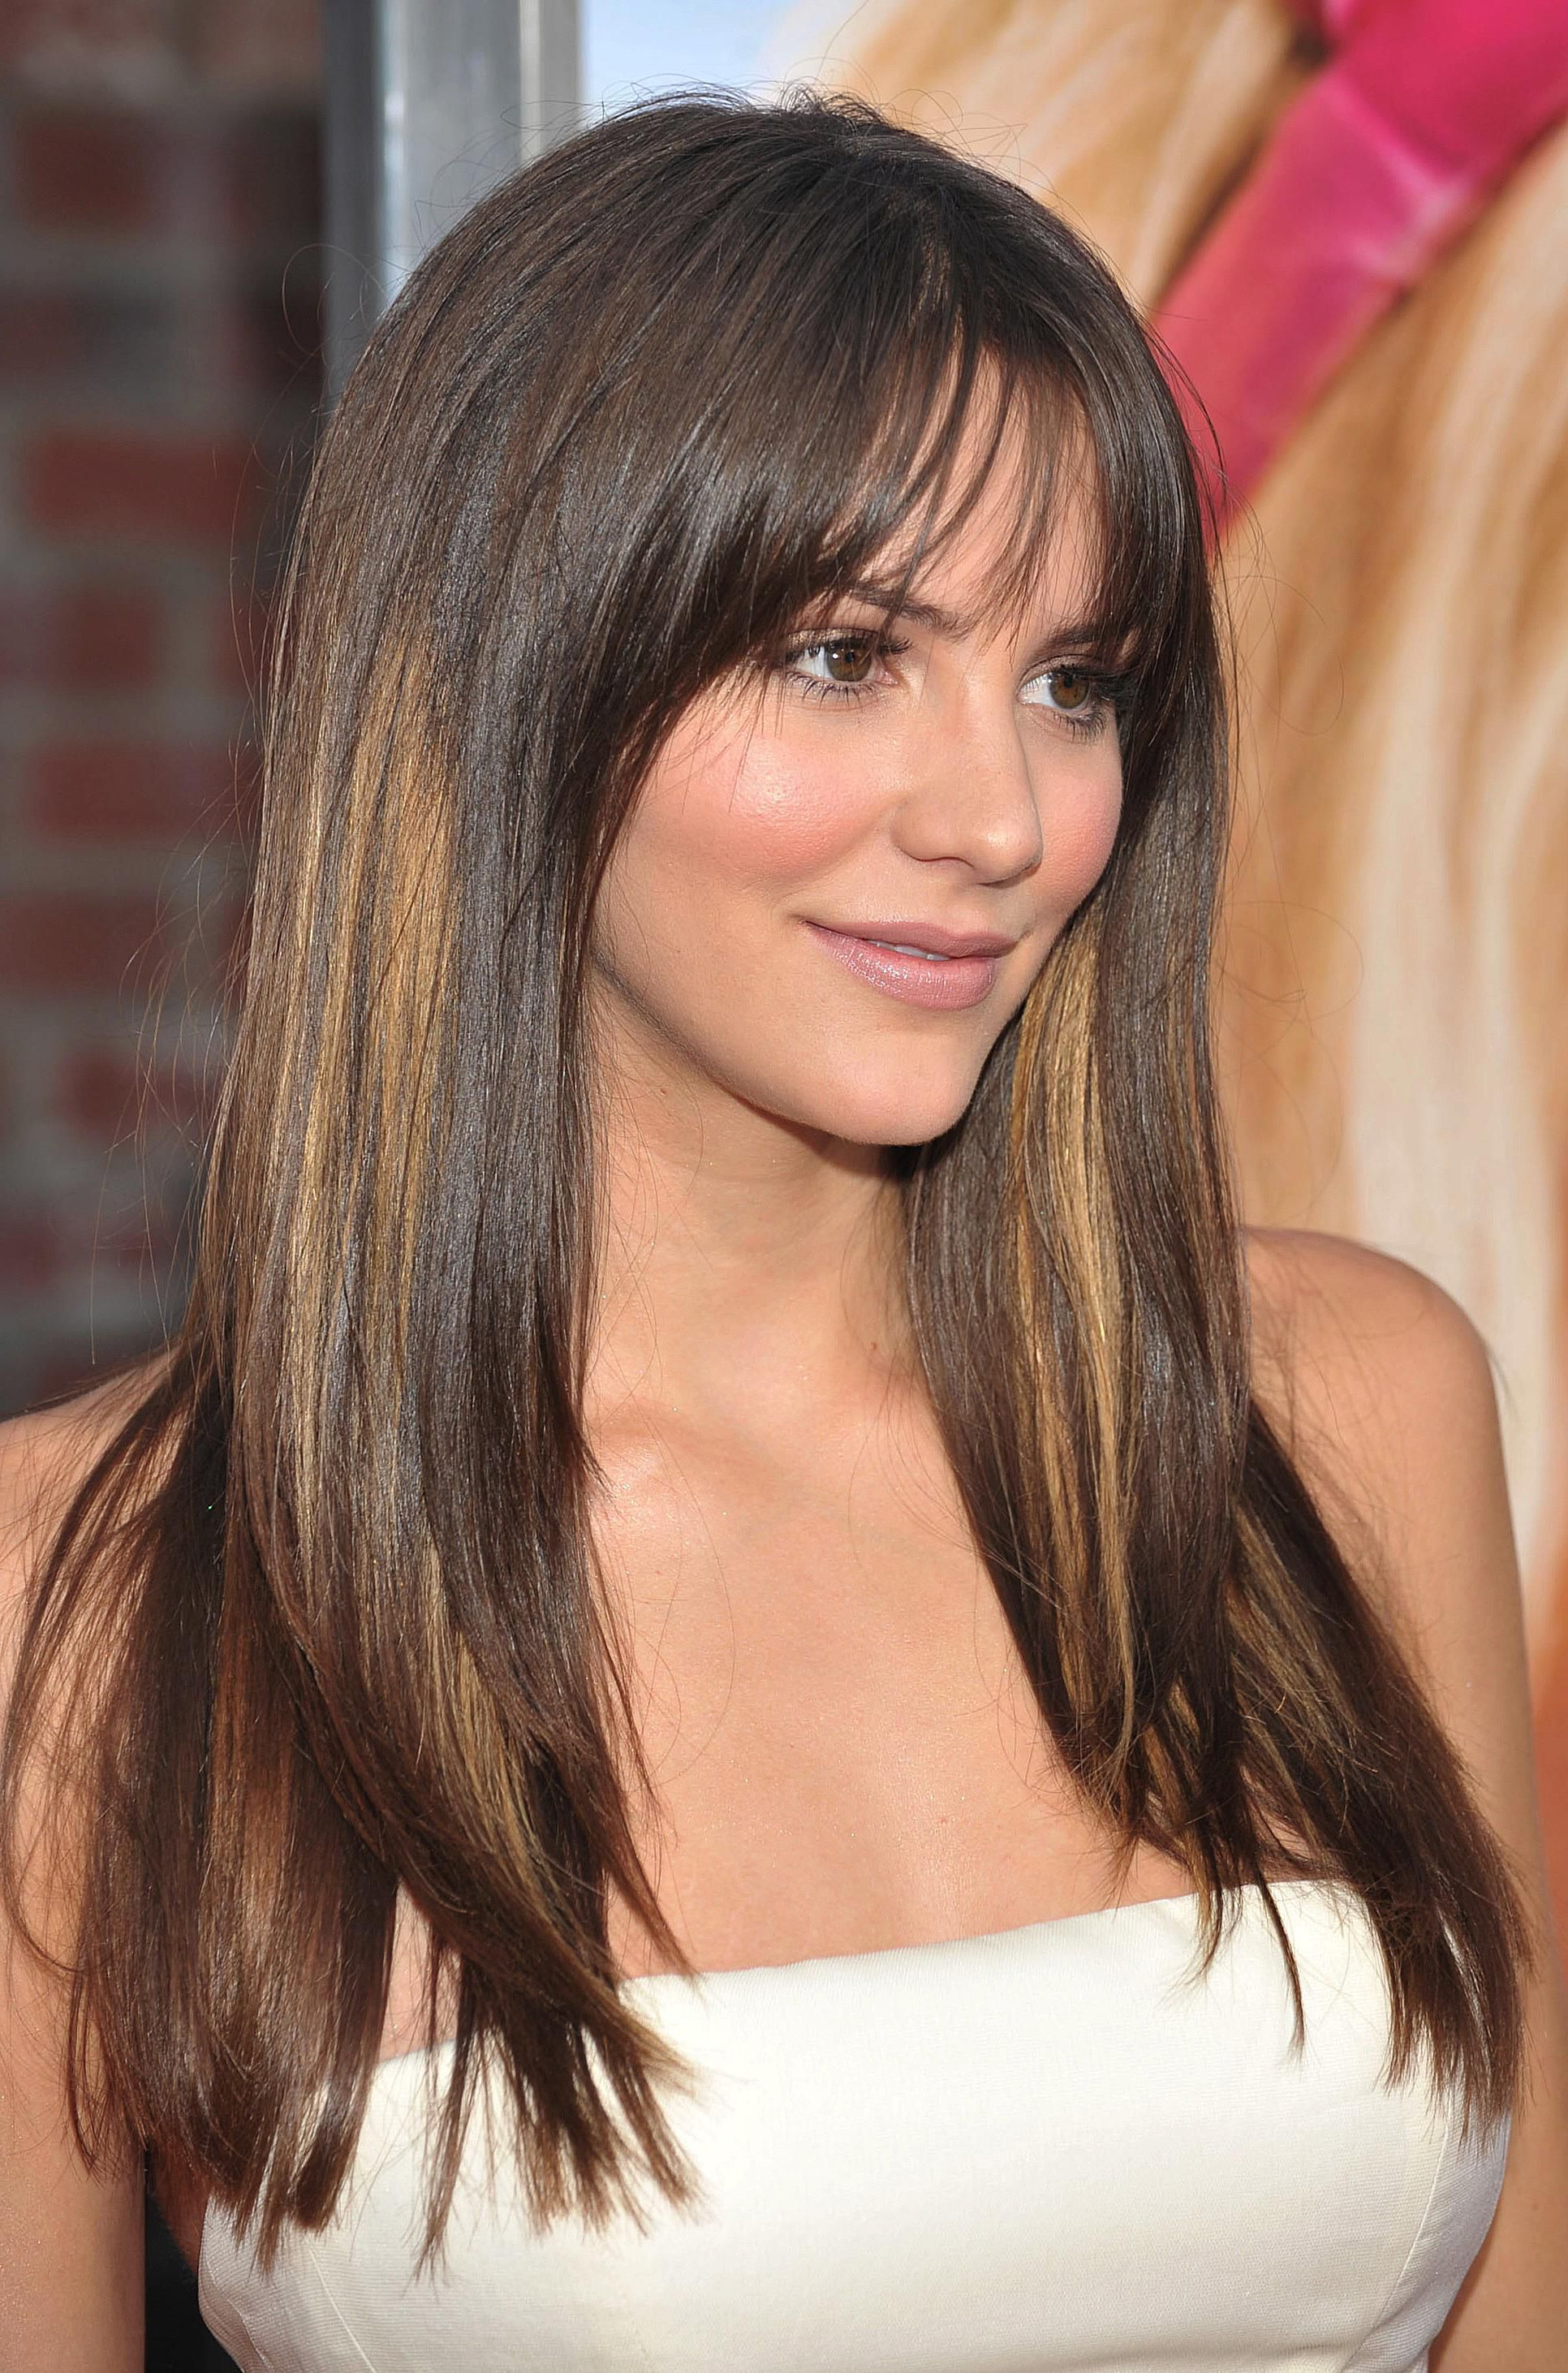 35 Flattering Hairstyles For Round Faces Intended For Well Known Medium Haircuts With Layers For Round Faces (View 13 of 20)